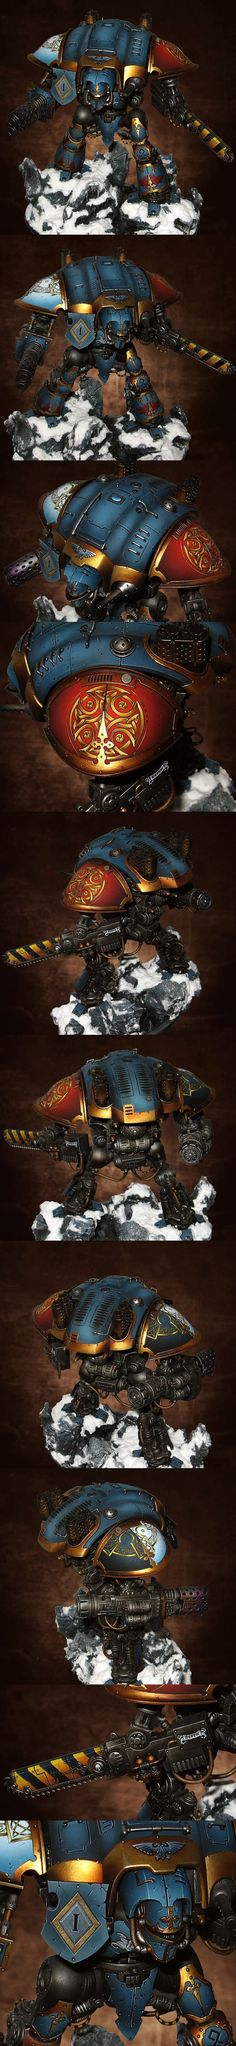 40k - Space Wolves Imperial Knight by Lan Studio